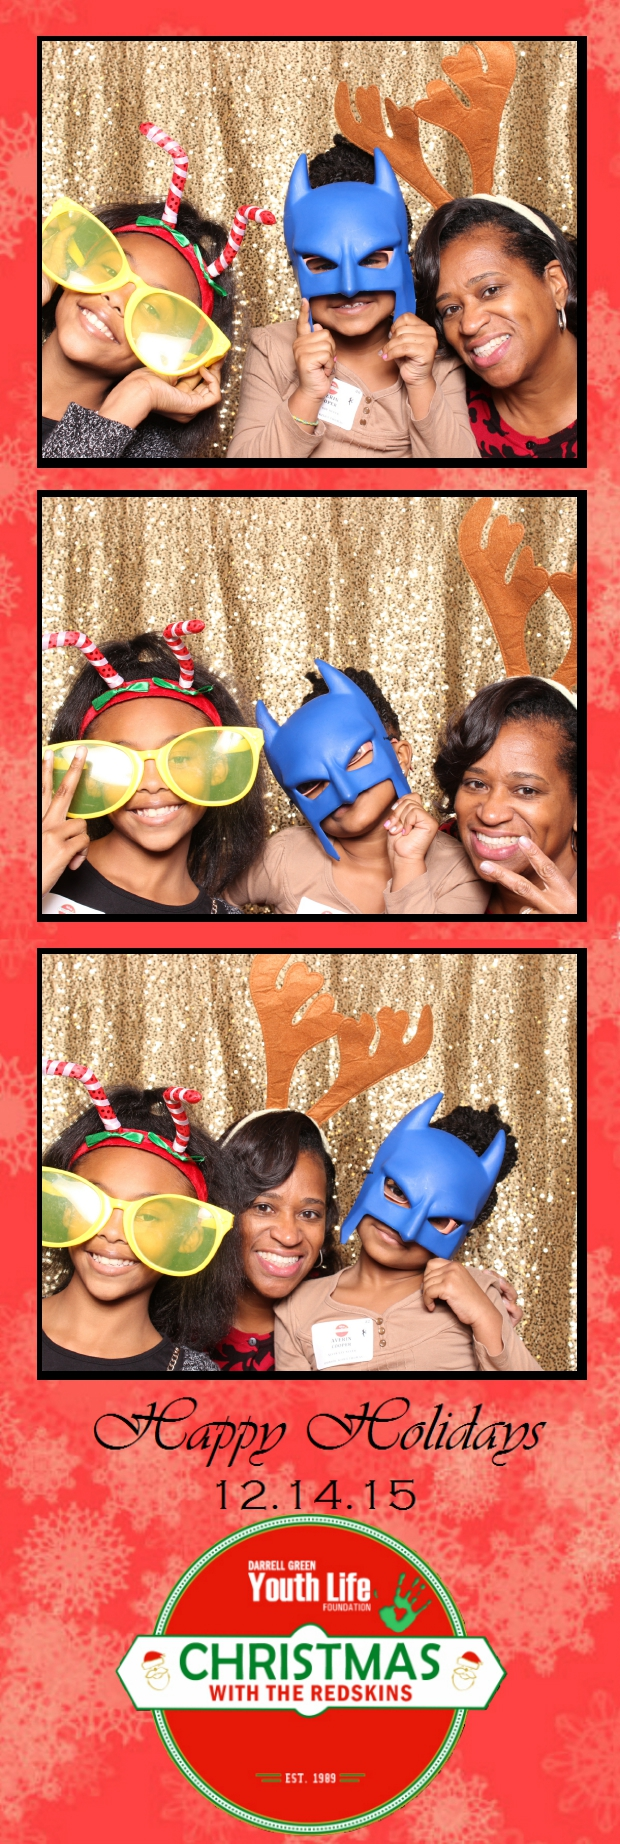 Guest House Events Photo Booth DGYLF Strips (7).jpg